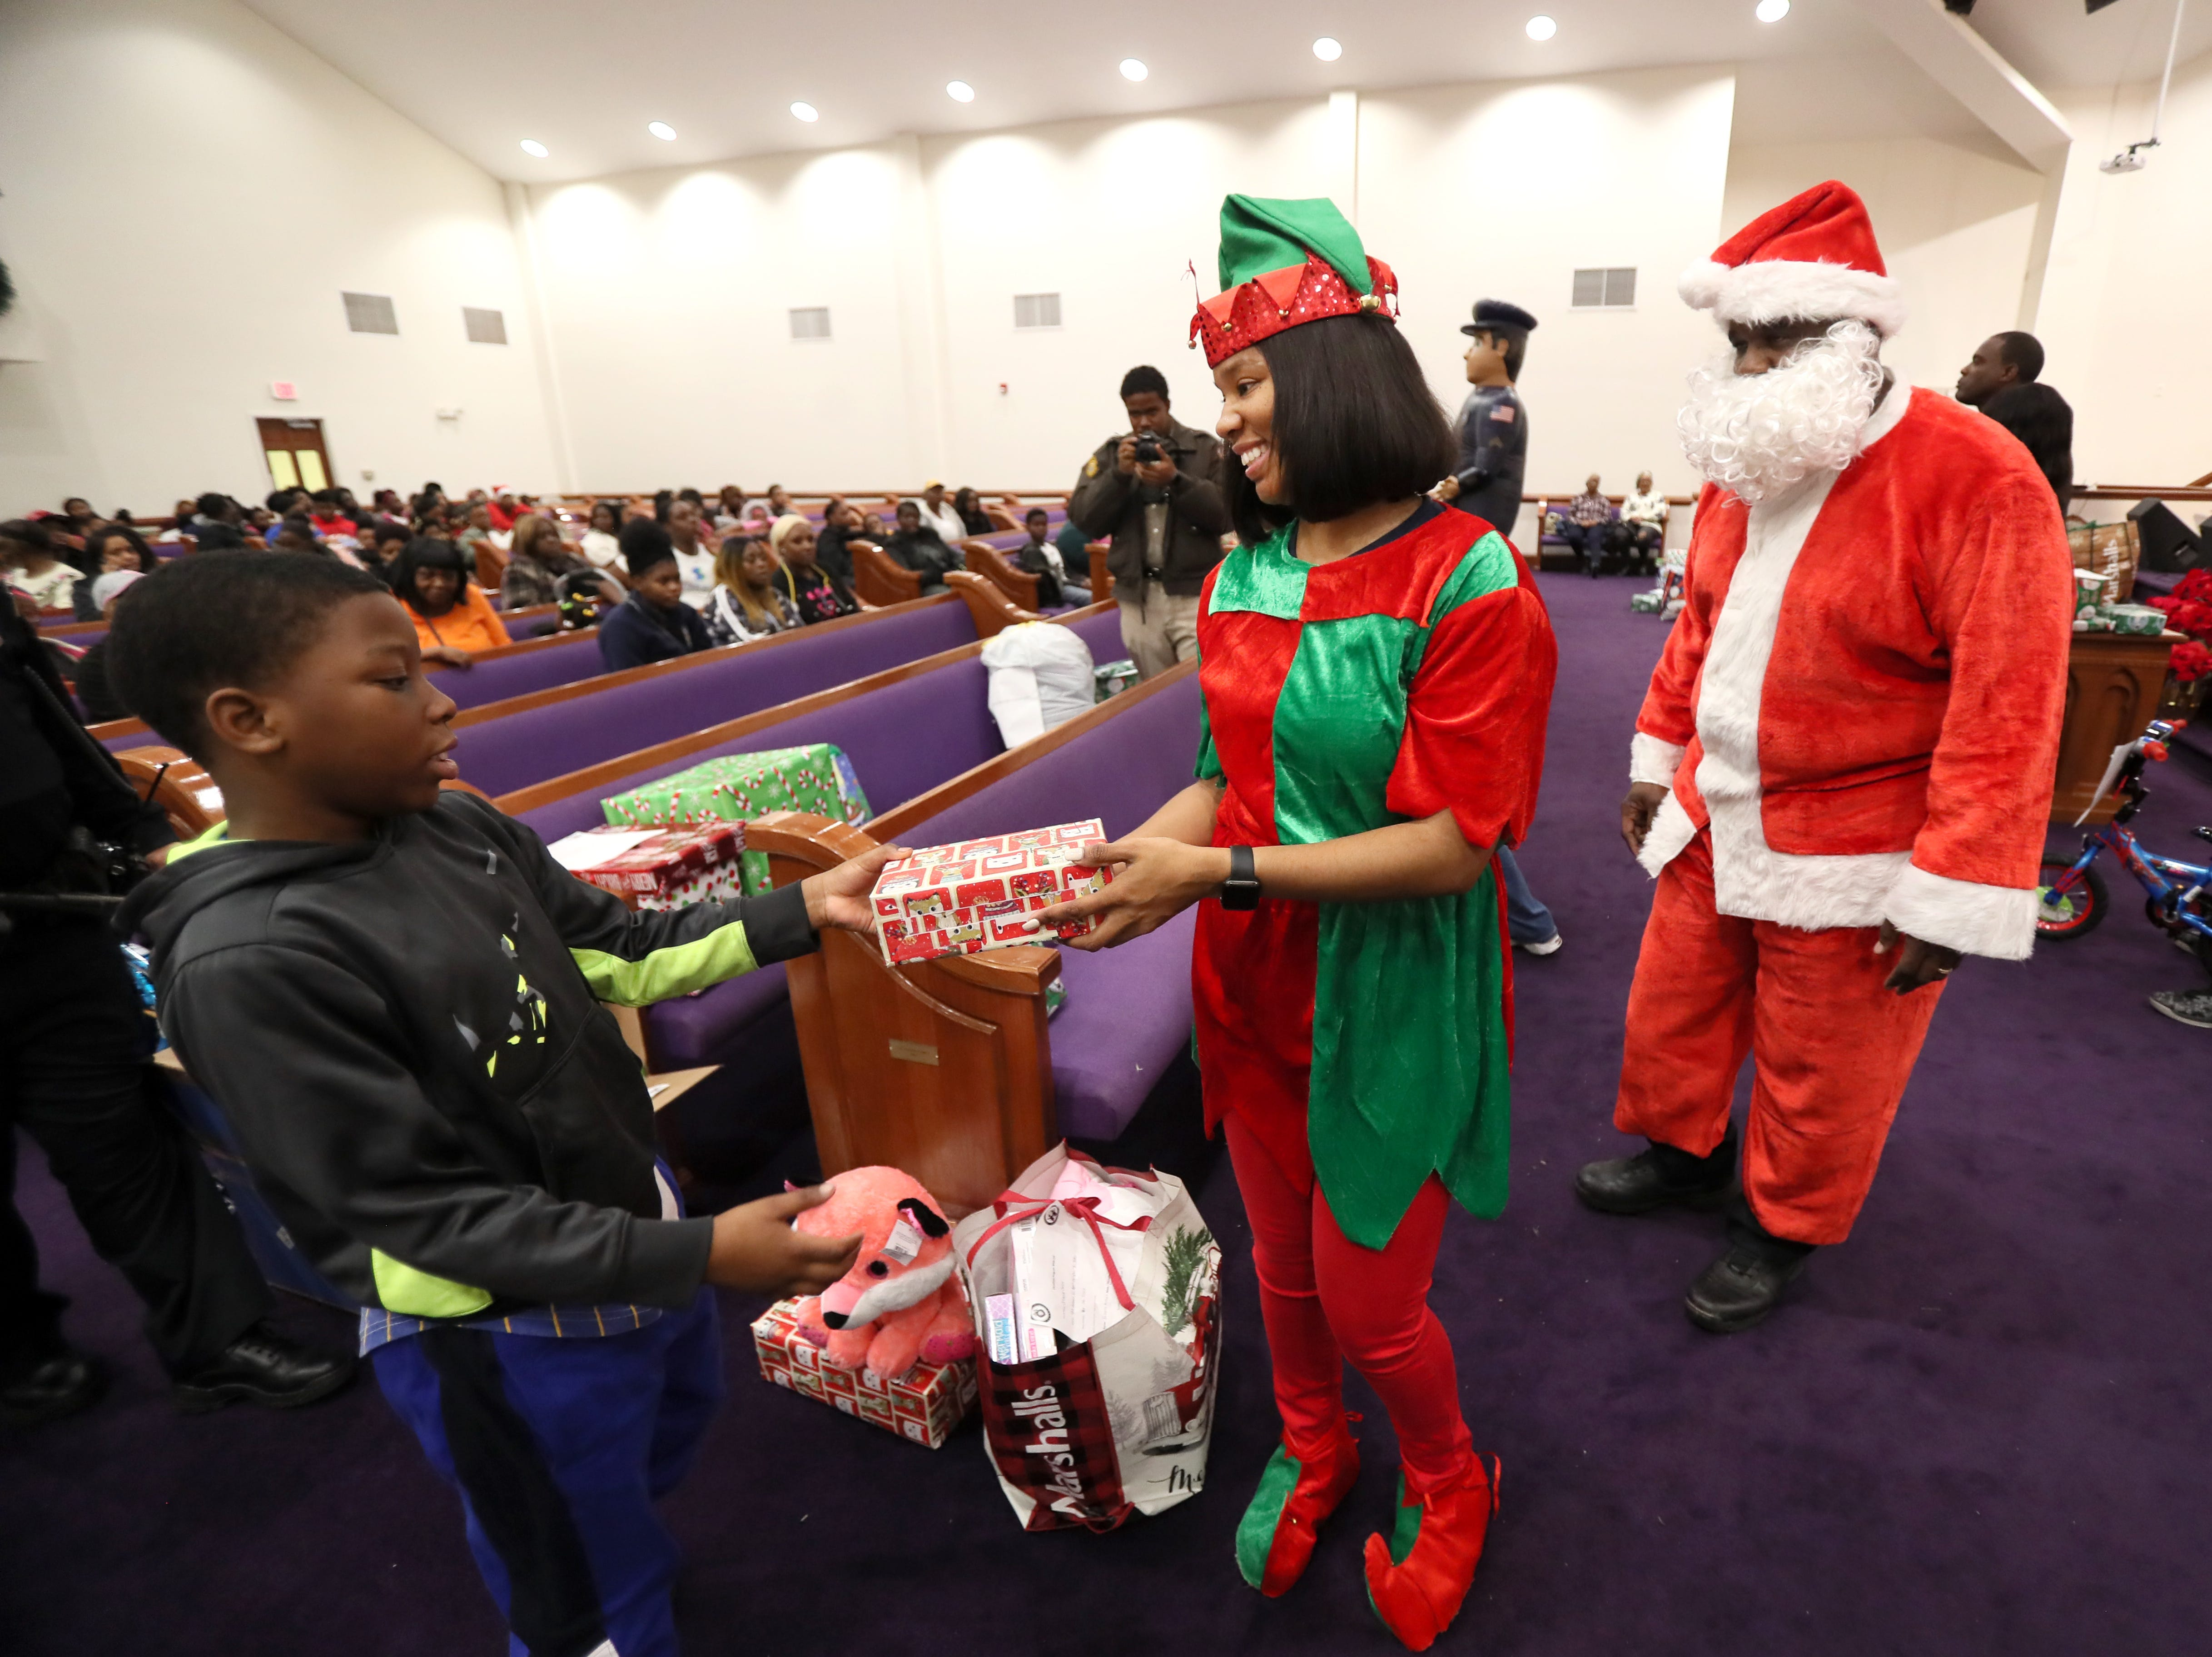 Officer Dominique McCraven hands out gifts dressed as an elf as the MPD's Community Outreach Program brings Christmas cheer to dozens of families at Grace Missionary Baptist Church on Thursday, Dec. 20, 2018.